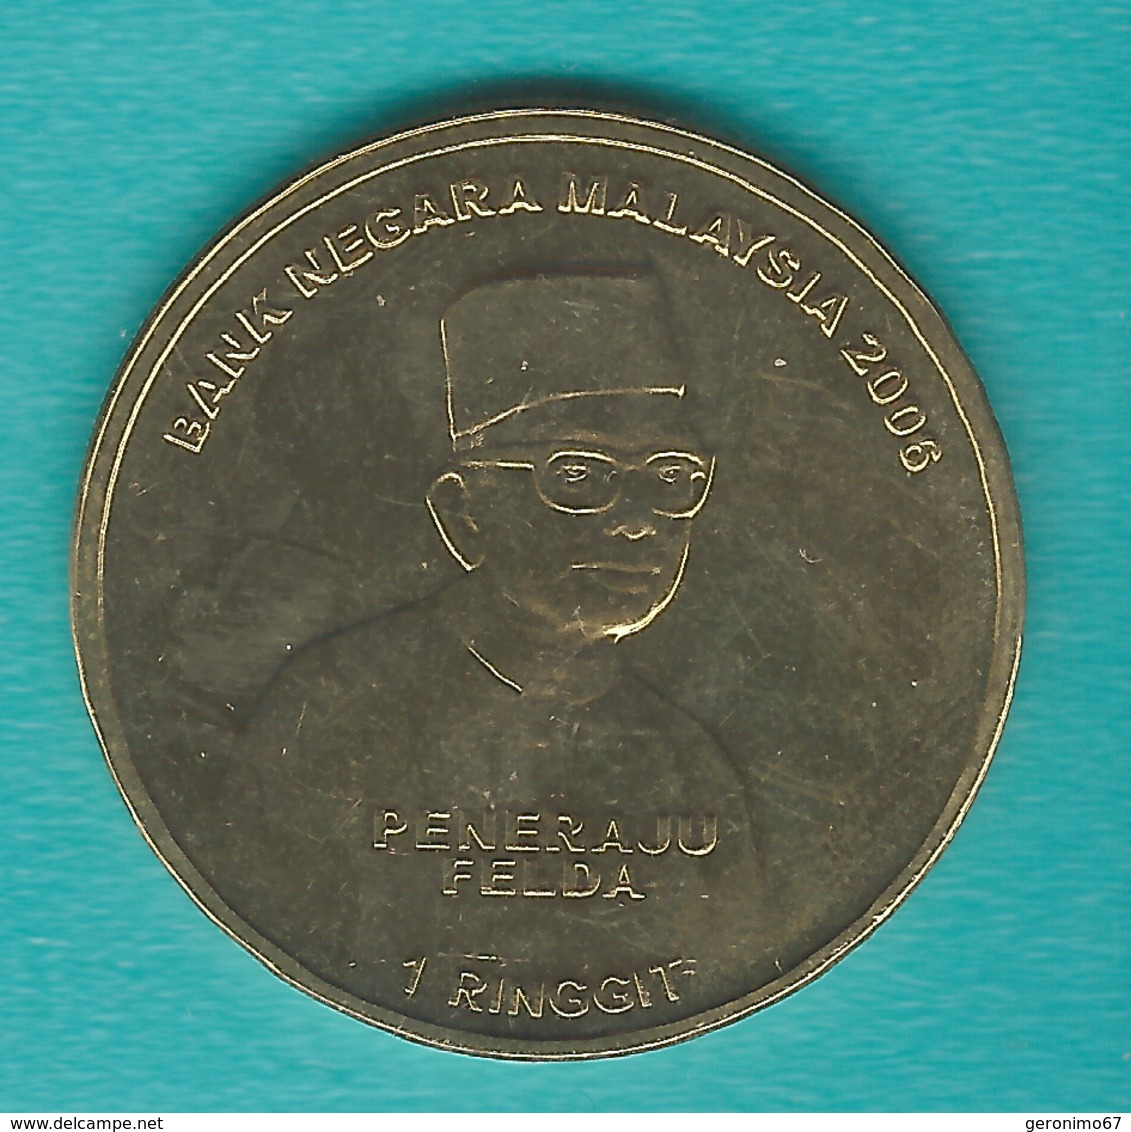 Malaysia - 1 Ringgit - 2006 - Federal Land Authority - KM144 - Malaysie